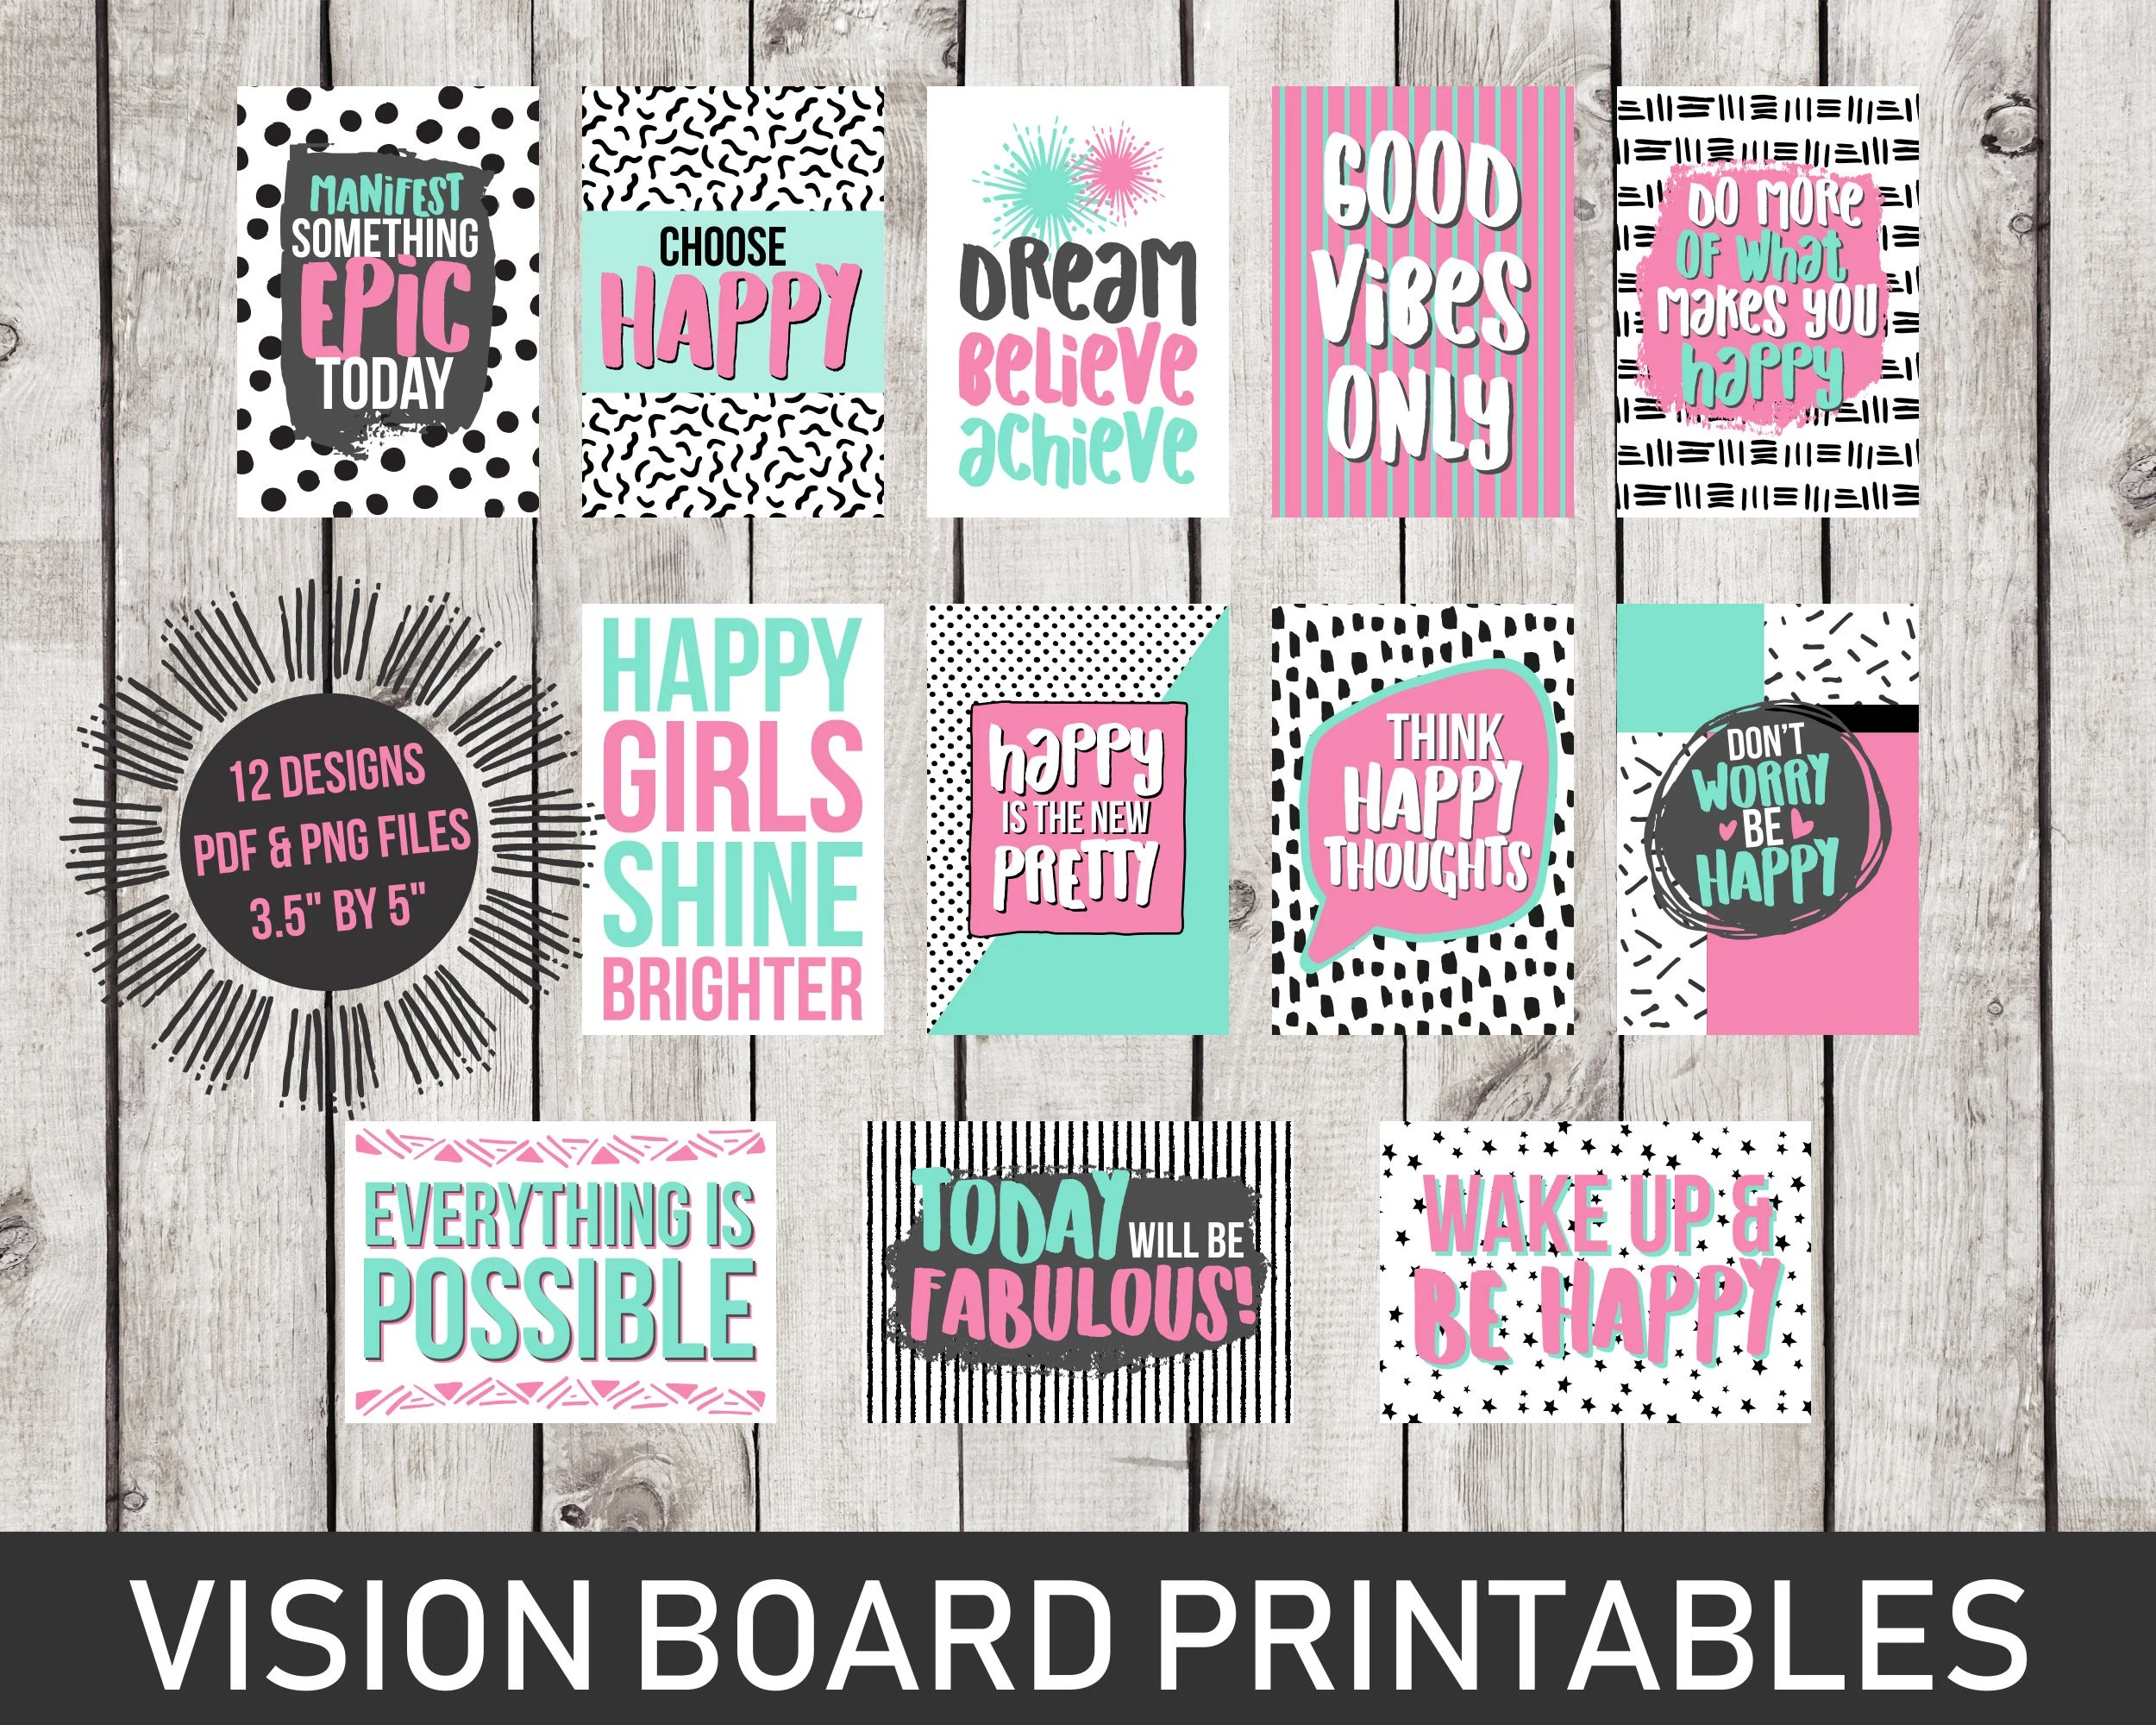 Vision Board Printables Inspirational Quotes Dorm Room